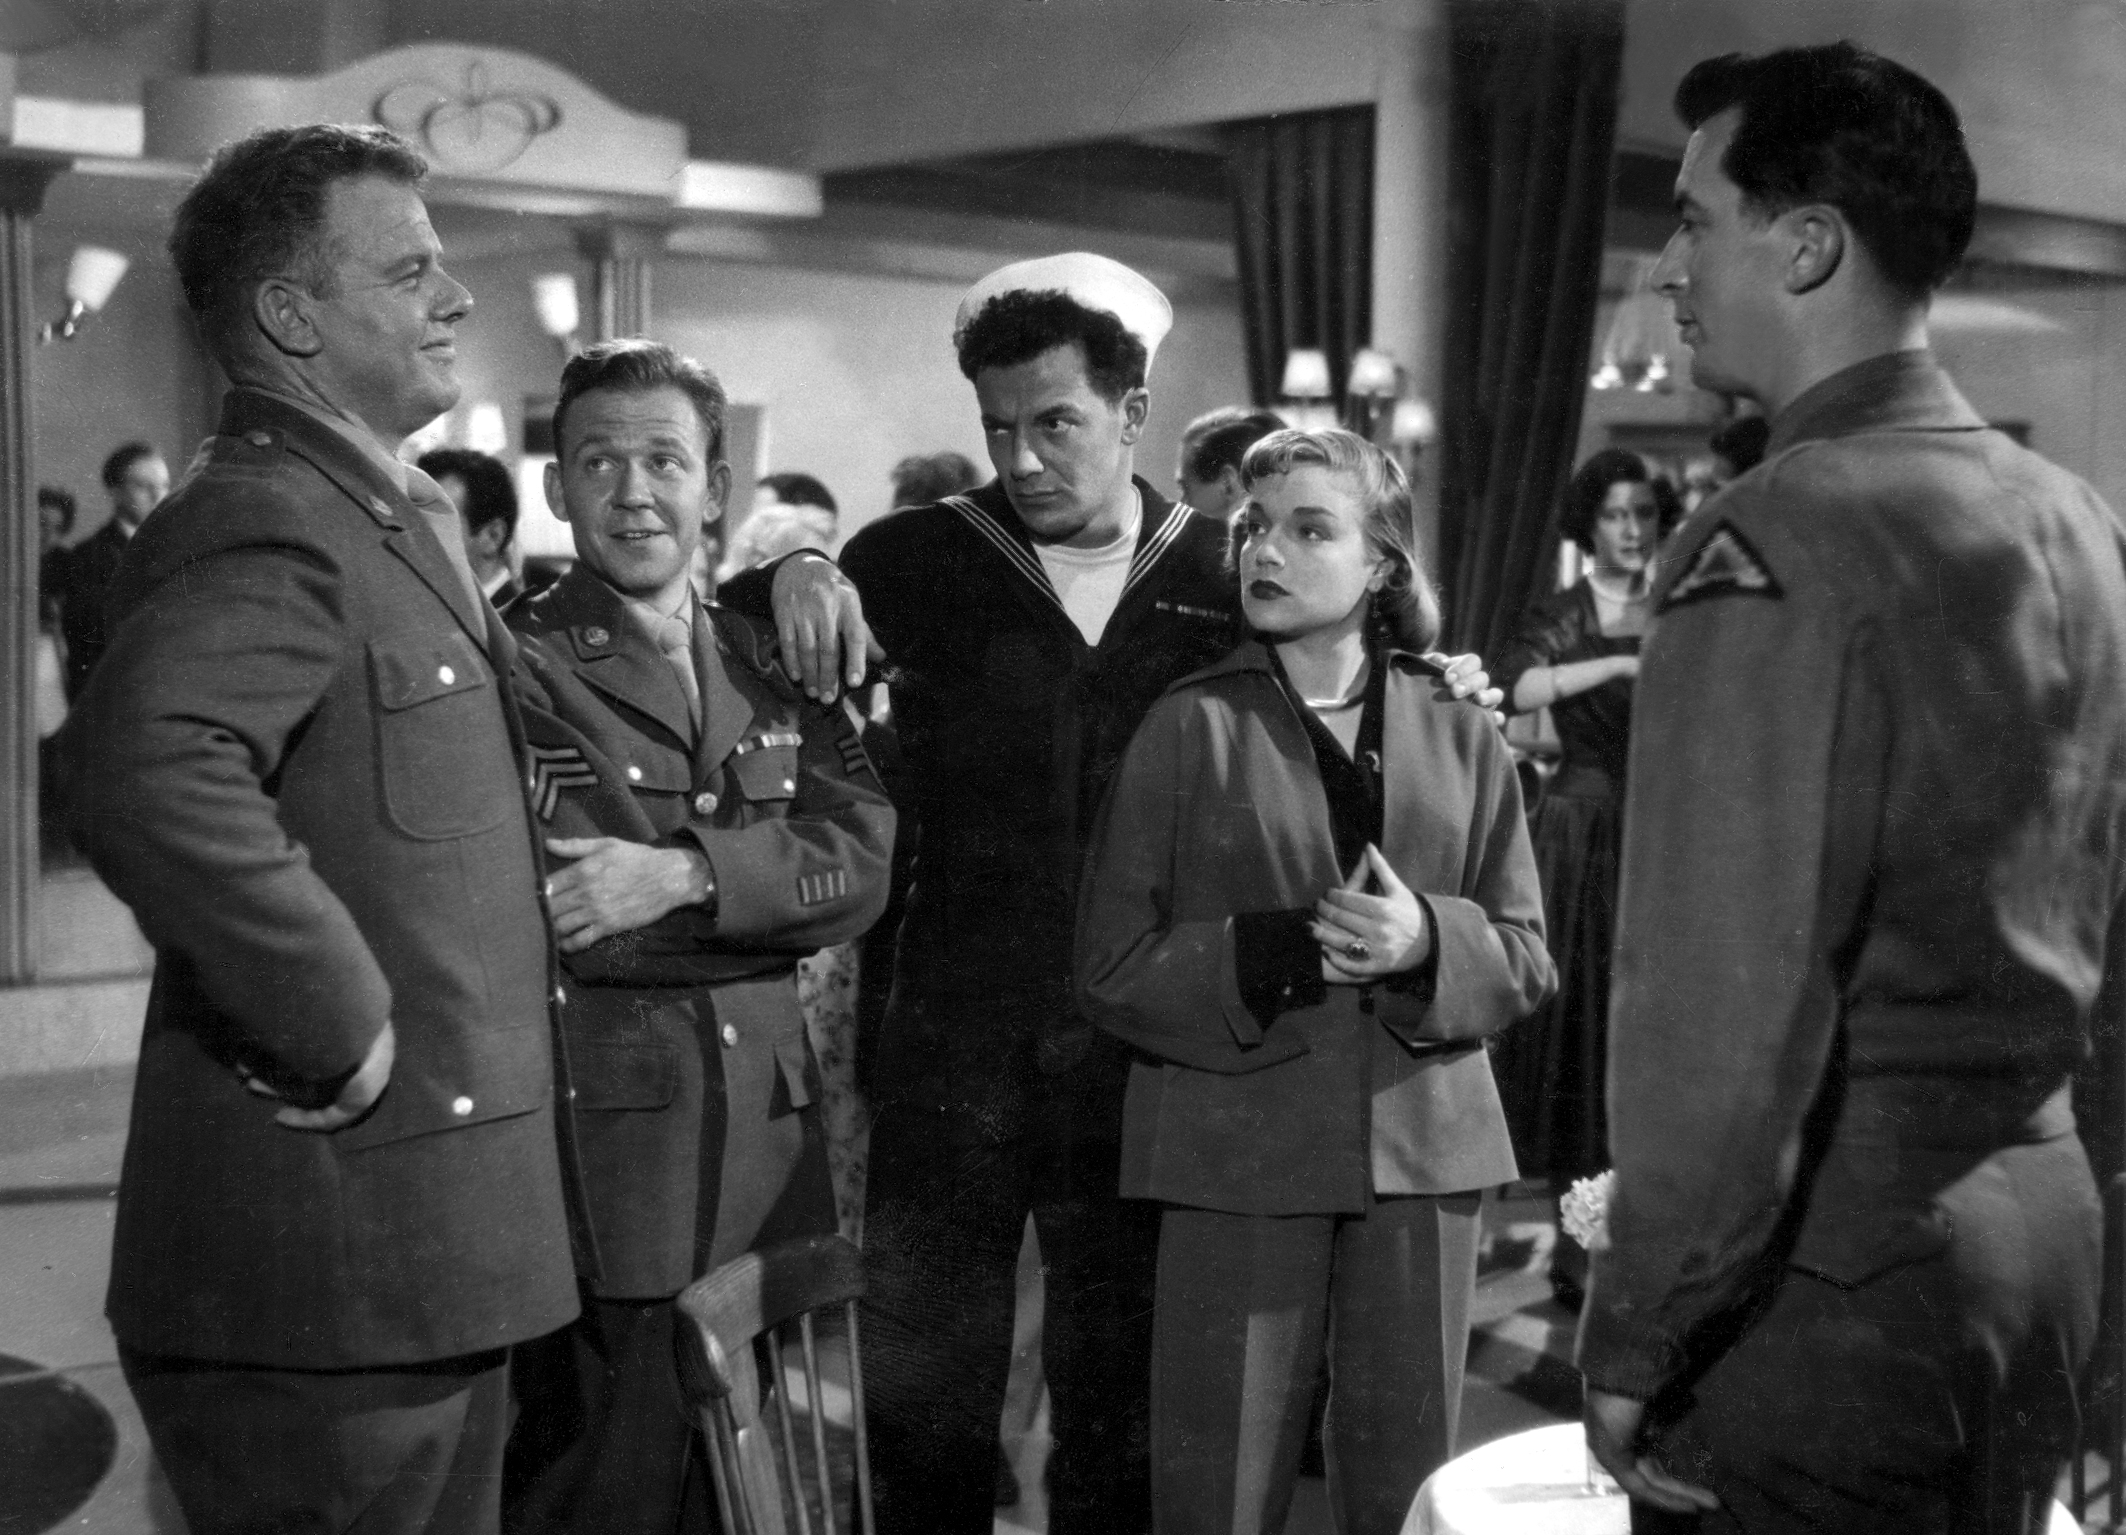 CORNEL WILDE AND SIMONE SIGNORET (CENTER)